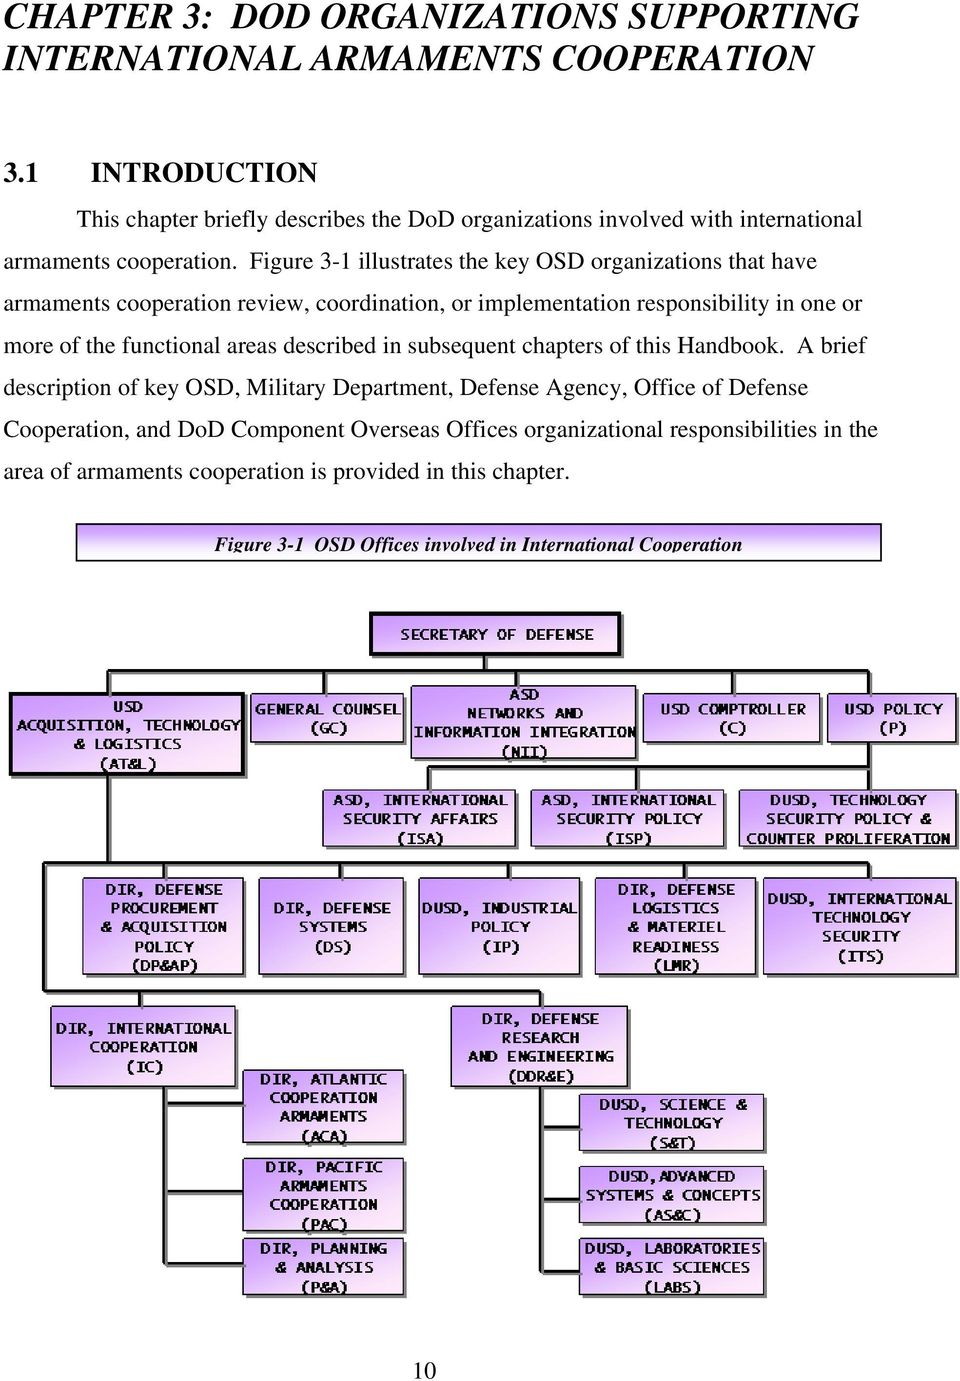 Figure 3-1 illustrates the key OSD organizations that have armaments cooperation review, coordination, or implementation responsibility in one or more of the functional areas